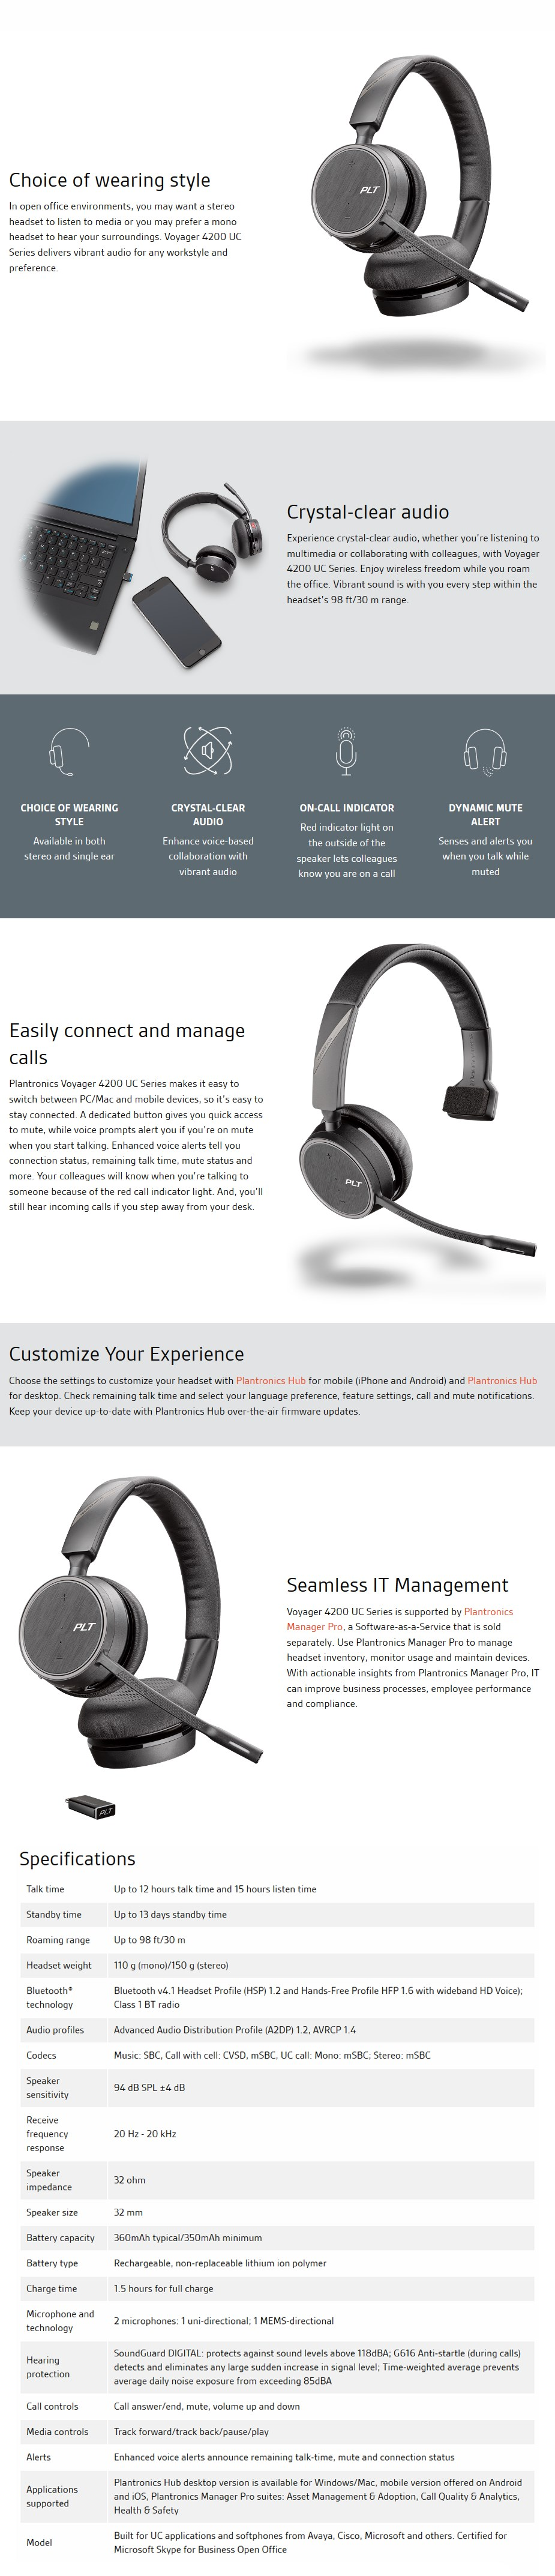 Plantronics Voyager 4210 USB-C Monaural Bluetooth Headset - Desktop Overview 1